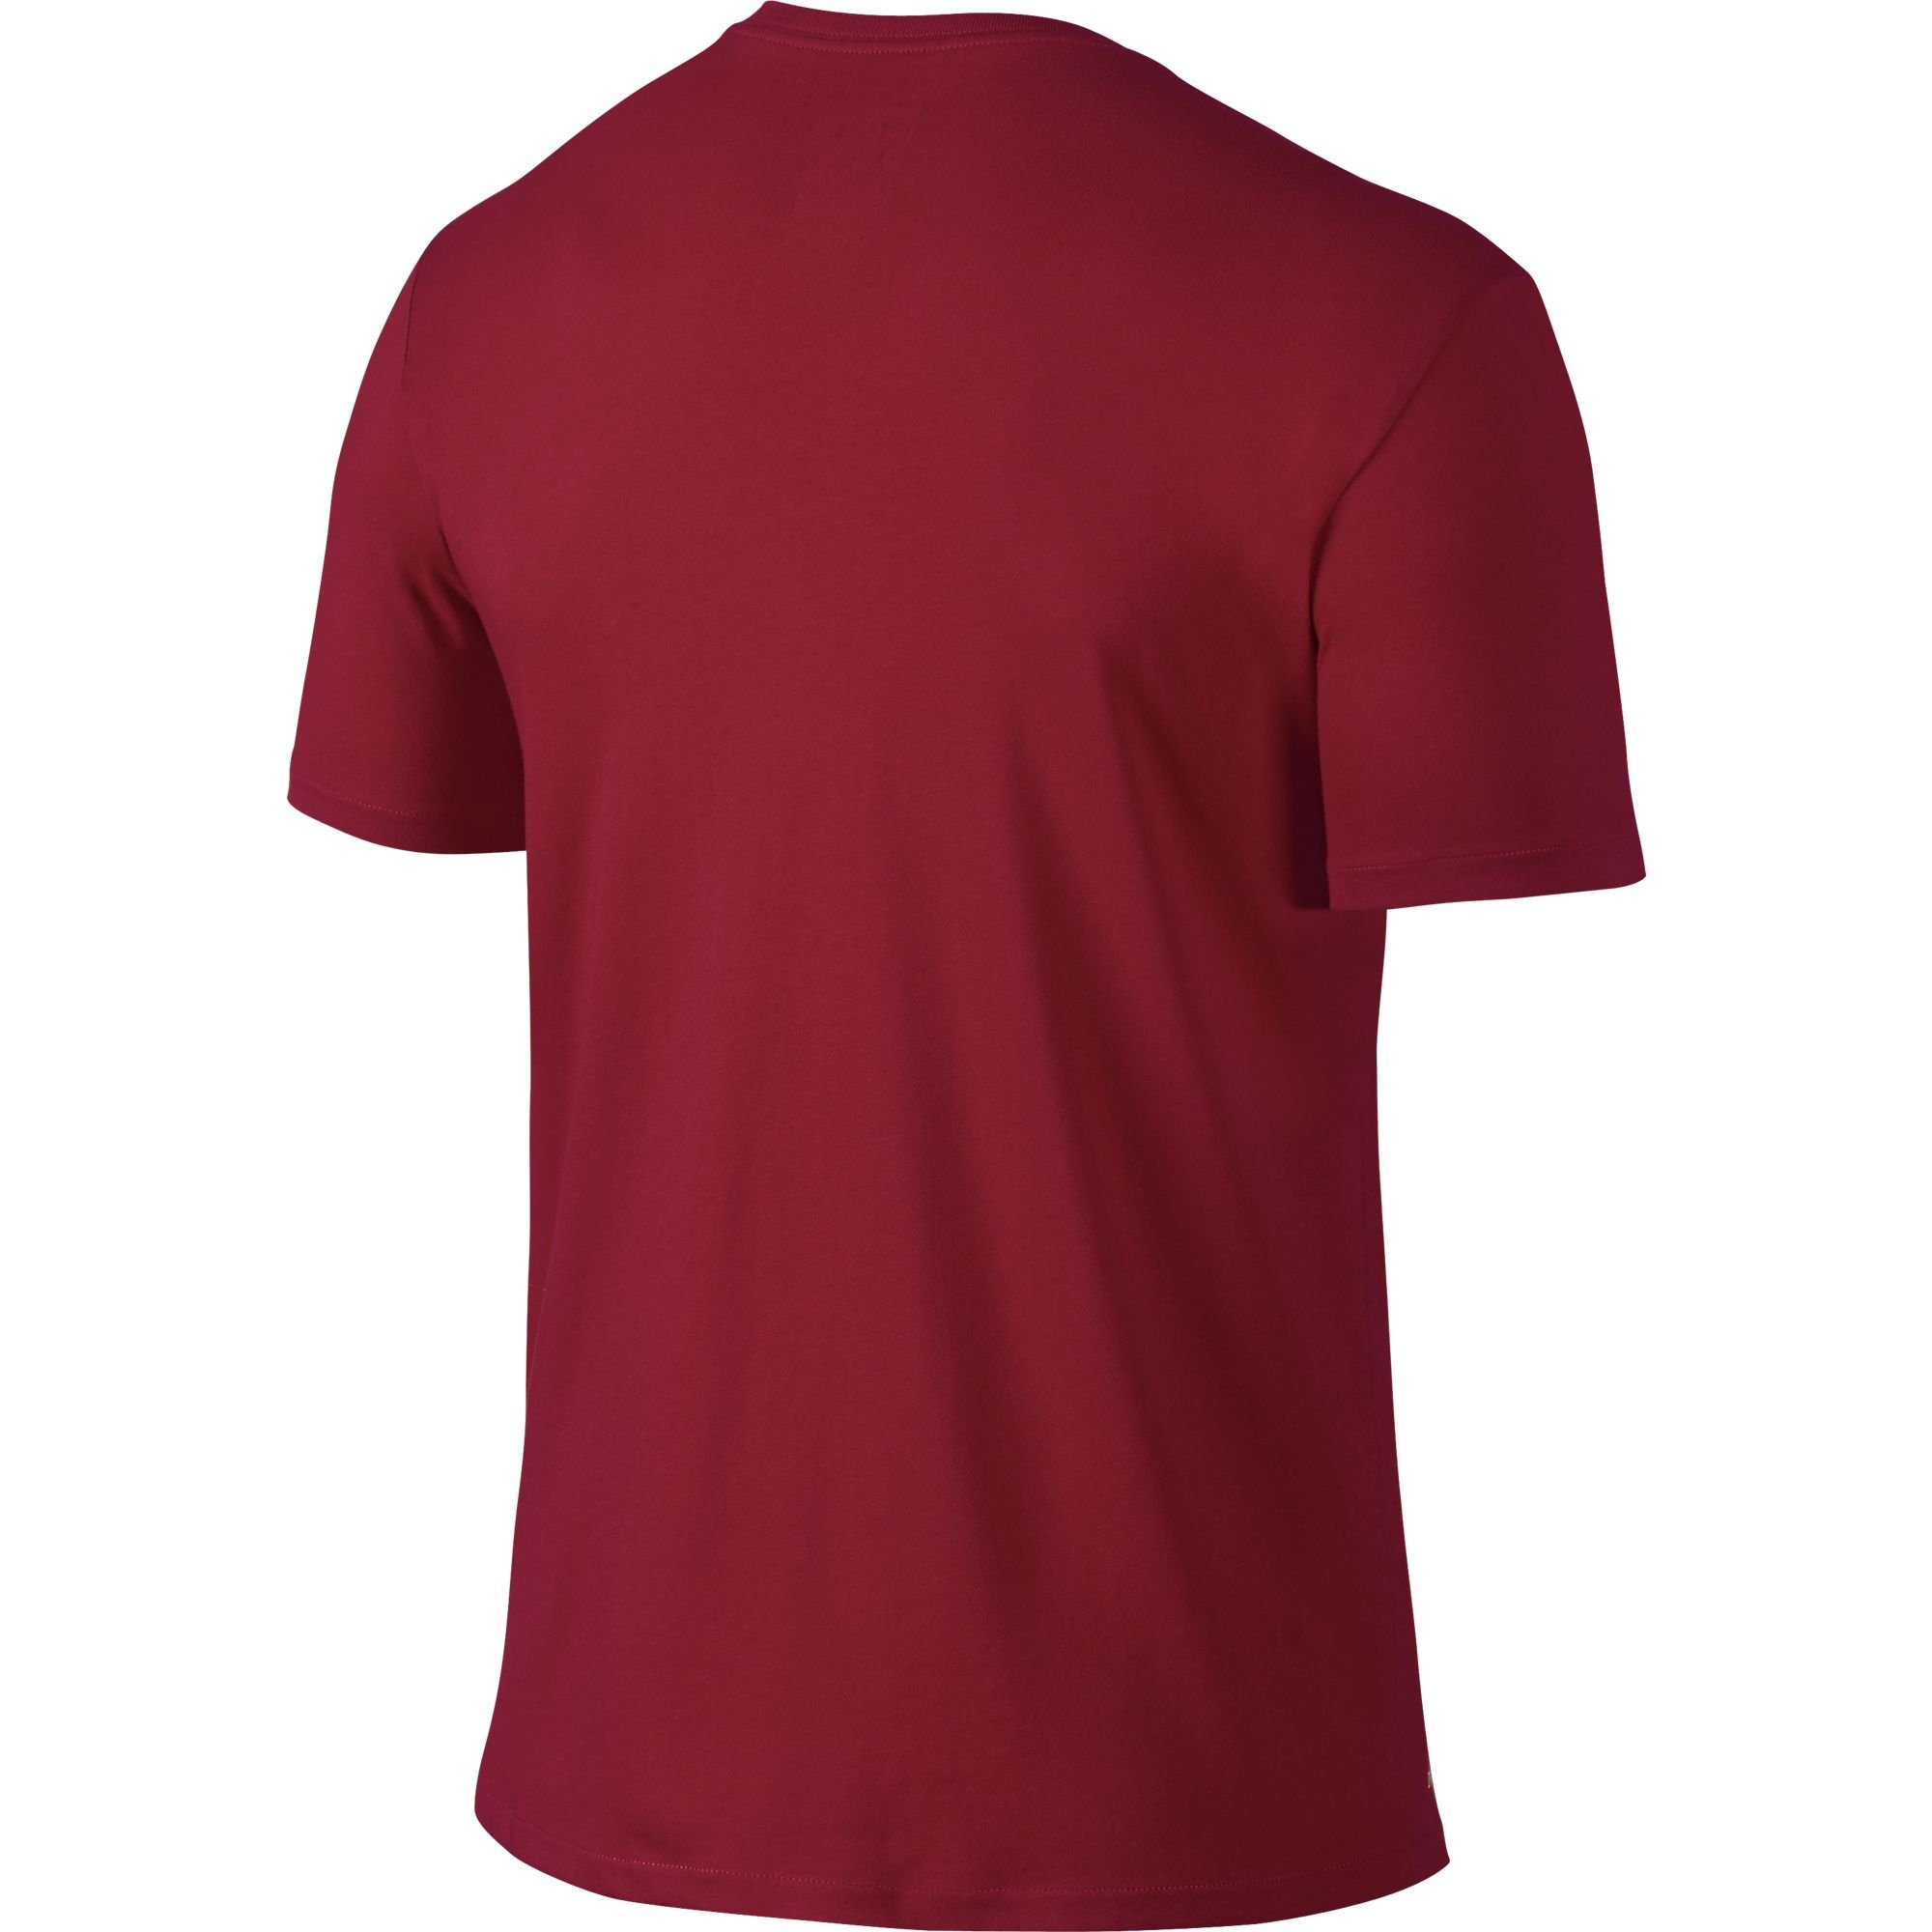 NIKE Men's Dri-FIT Cotton 2.0 Tee, Gym Red/Gym Red/White, Small by Nike (Image #2)